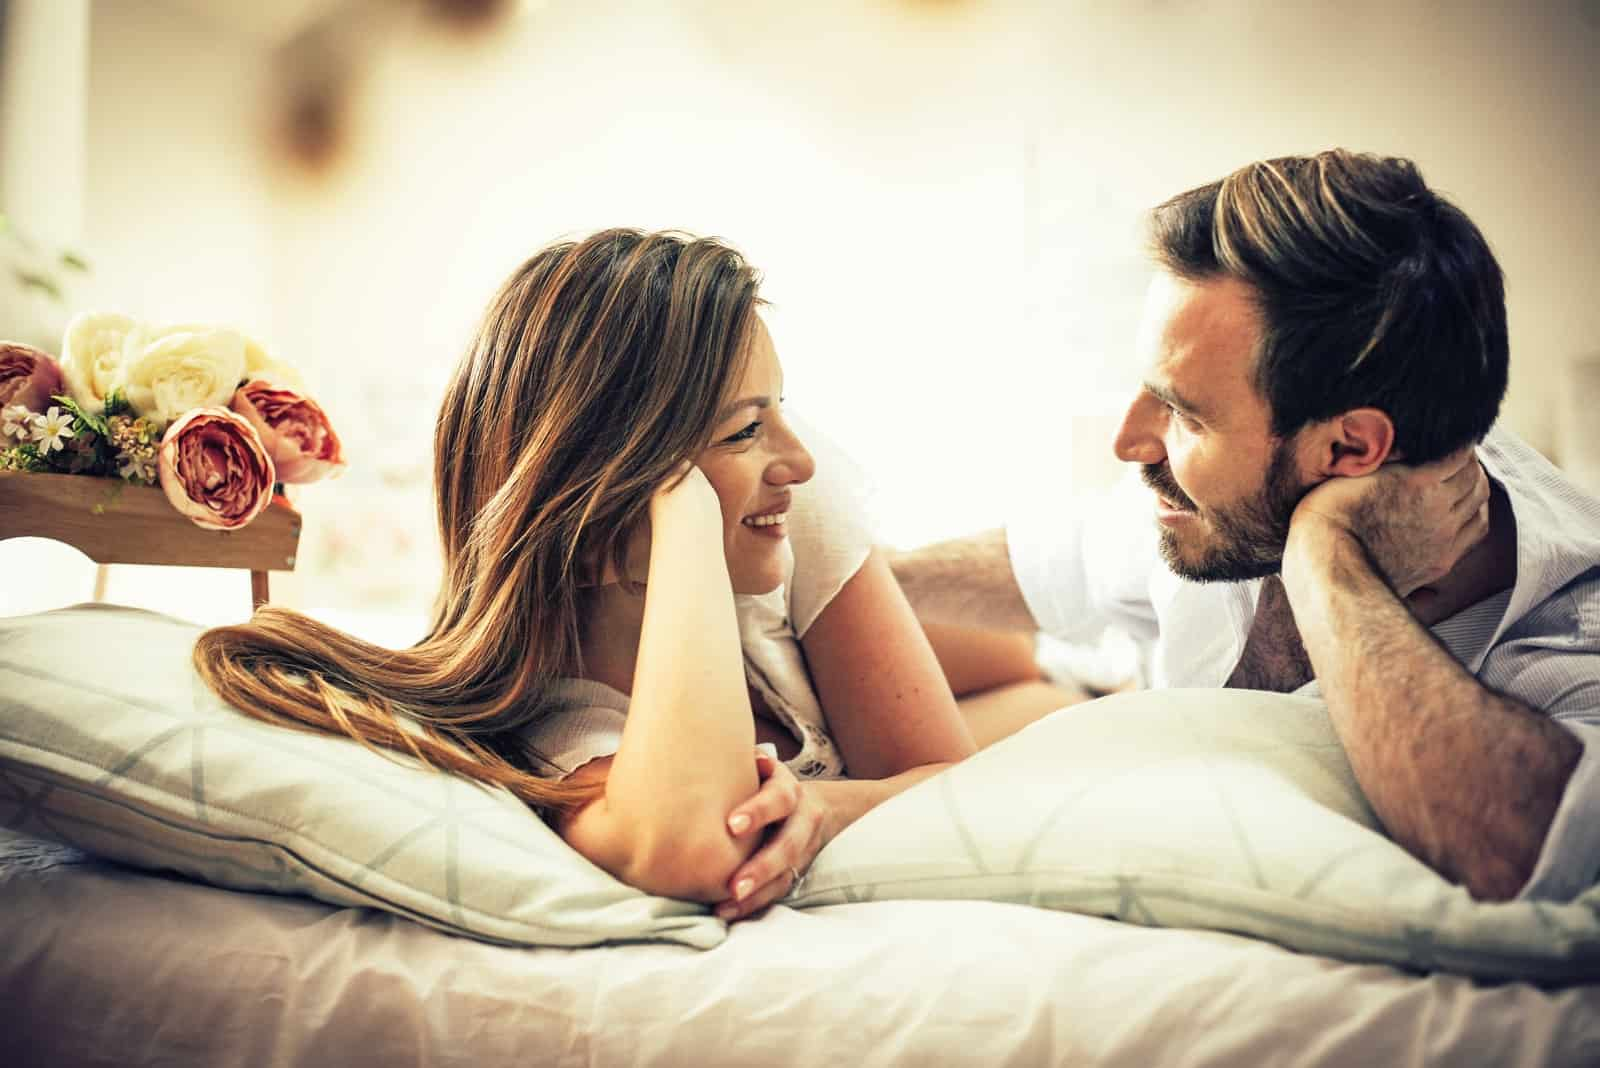 man and woman making eye contact while laying on bed